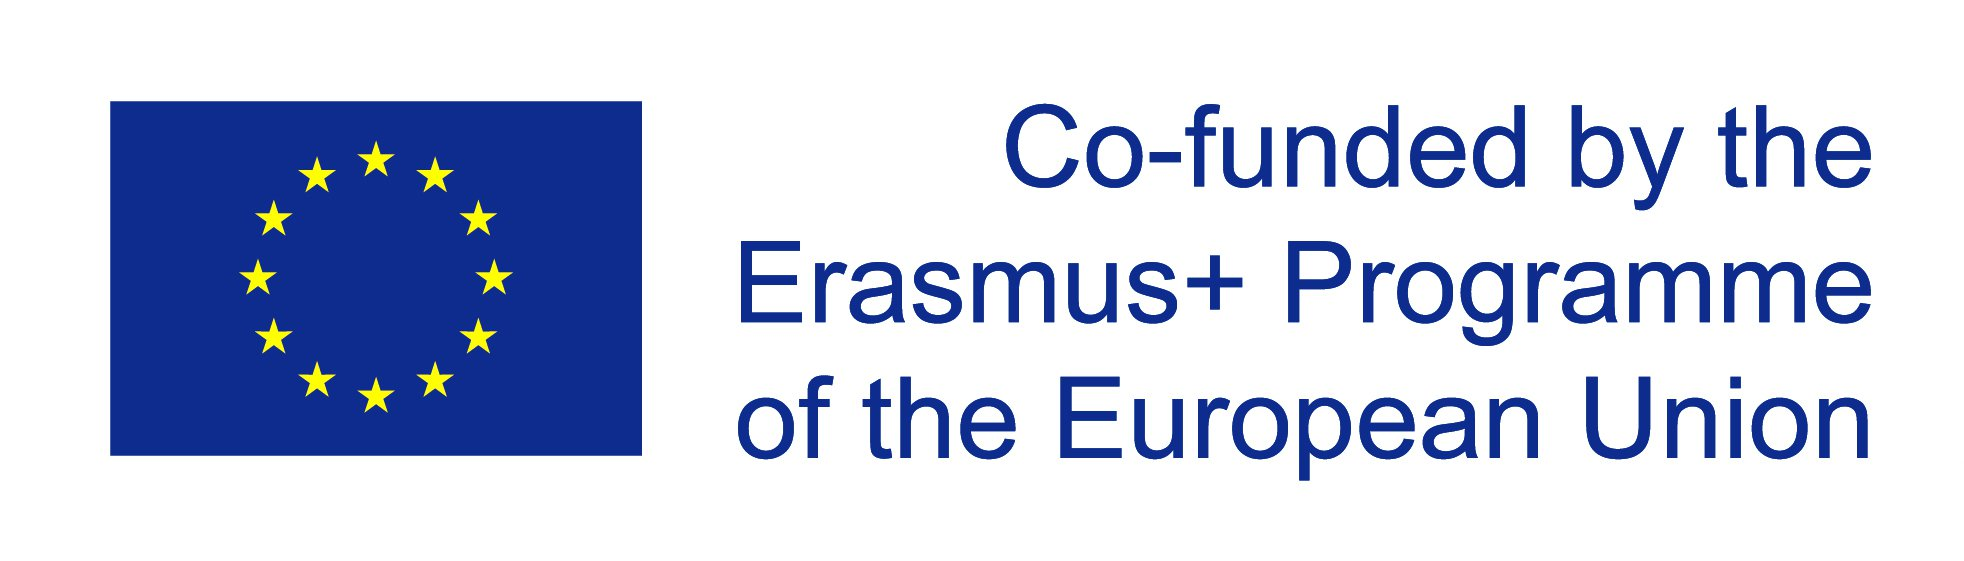 LOGO Co-funded by Erasmus.jpg